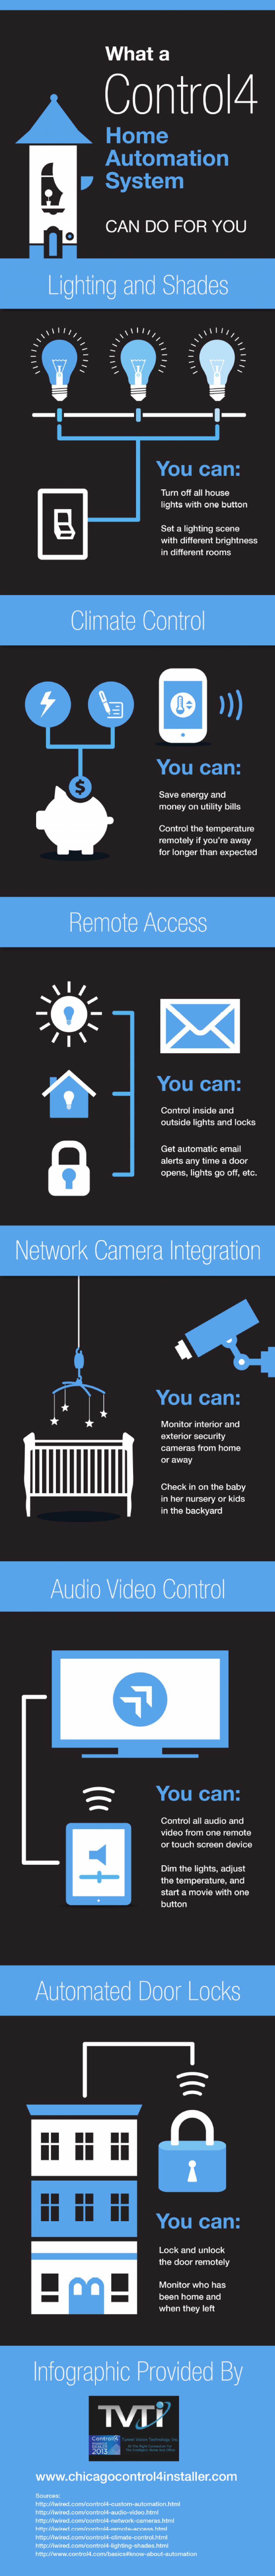 What a Control4 Home Automation System Can Do for You Infographic